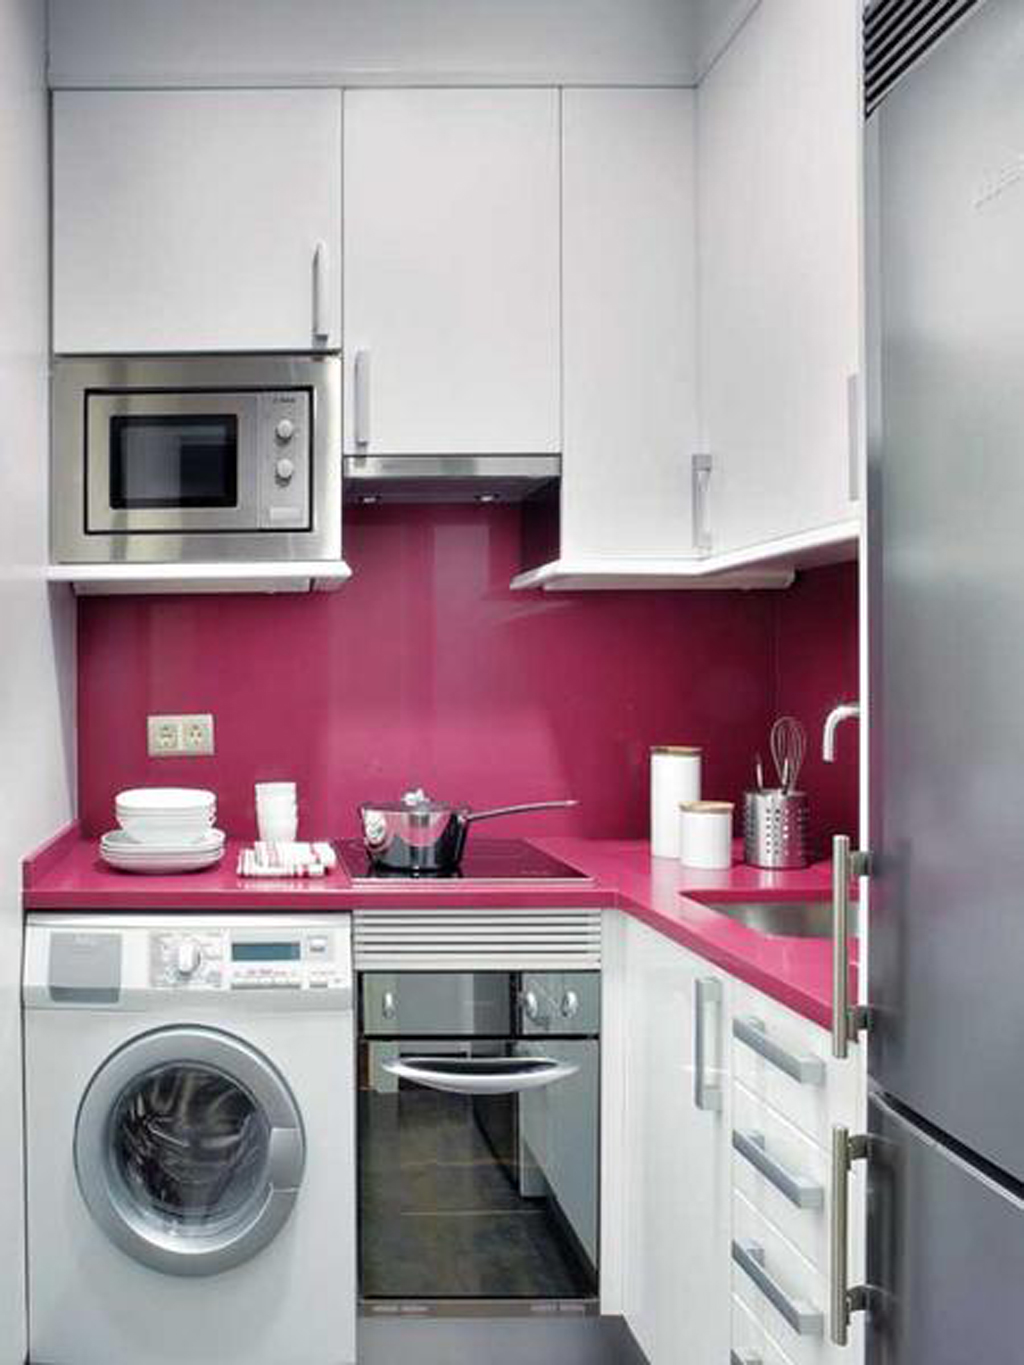 Uncategorized Space Saver Kitchen Appliances space saver microwave for compact and functional kitchen ideas small spaces with white cabinets pink countertops wall